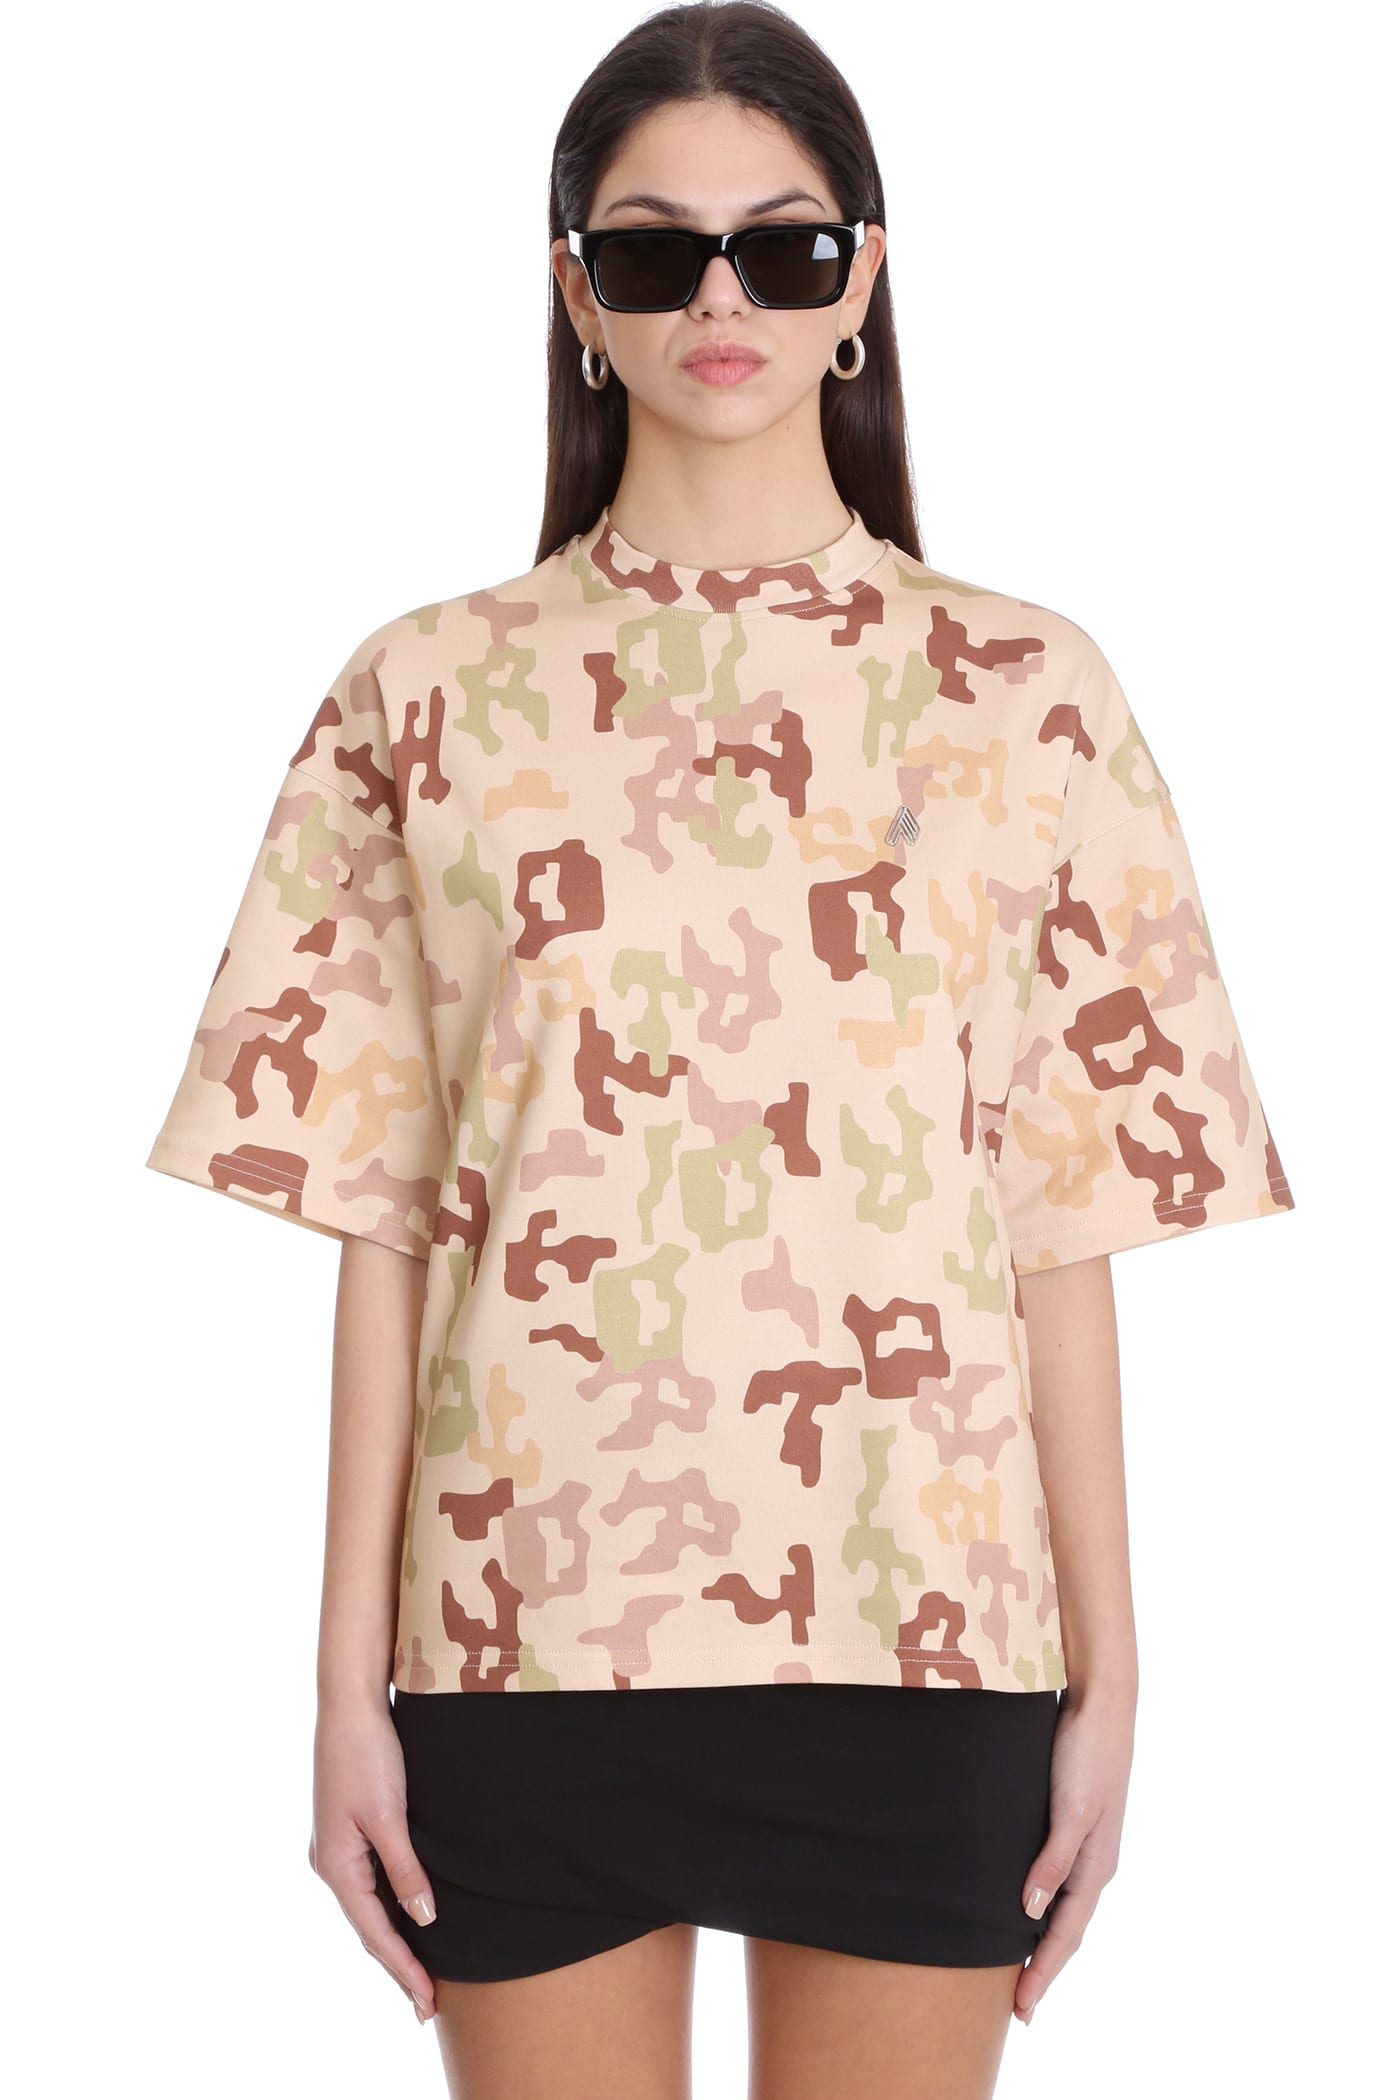 Attico CARA T-SHIRT IN BEIGE COTTON